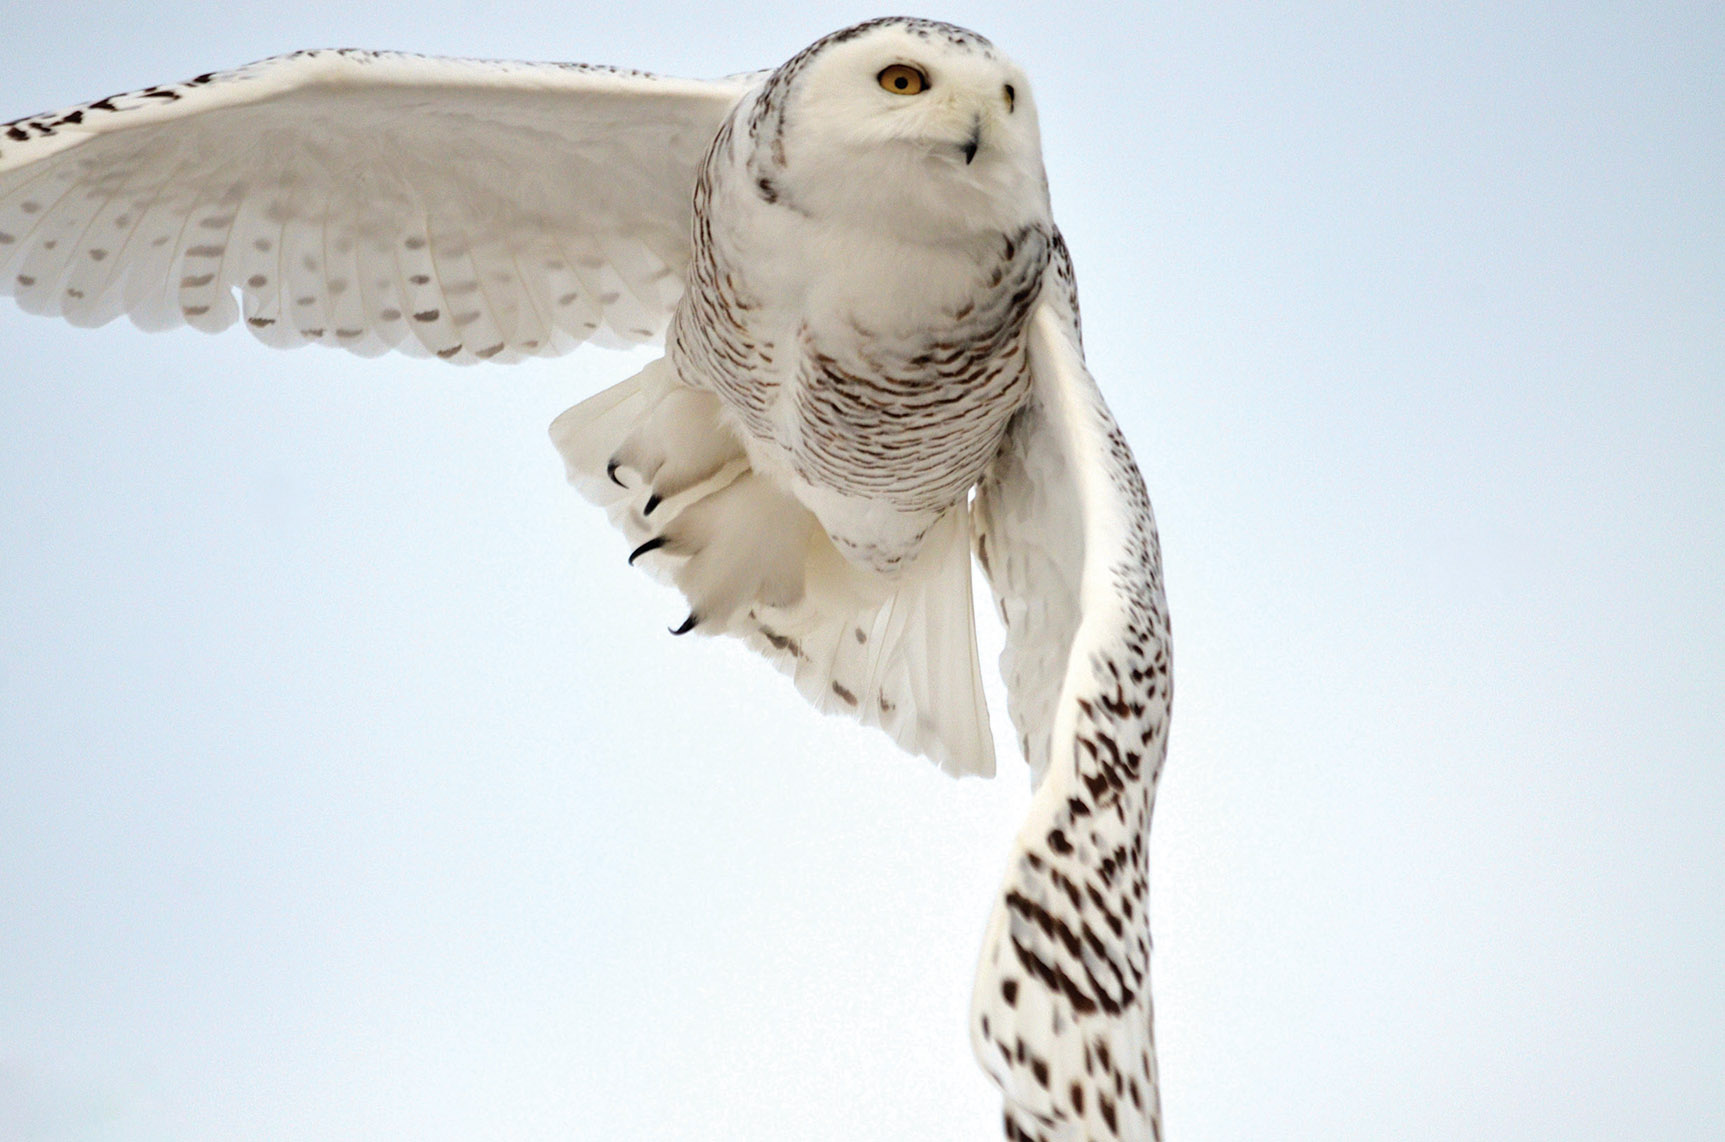 Snowy Owls move into our area during the winter, providing an opportunity to marvel at their hunting techniques.